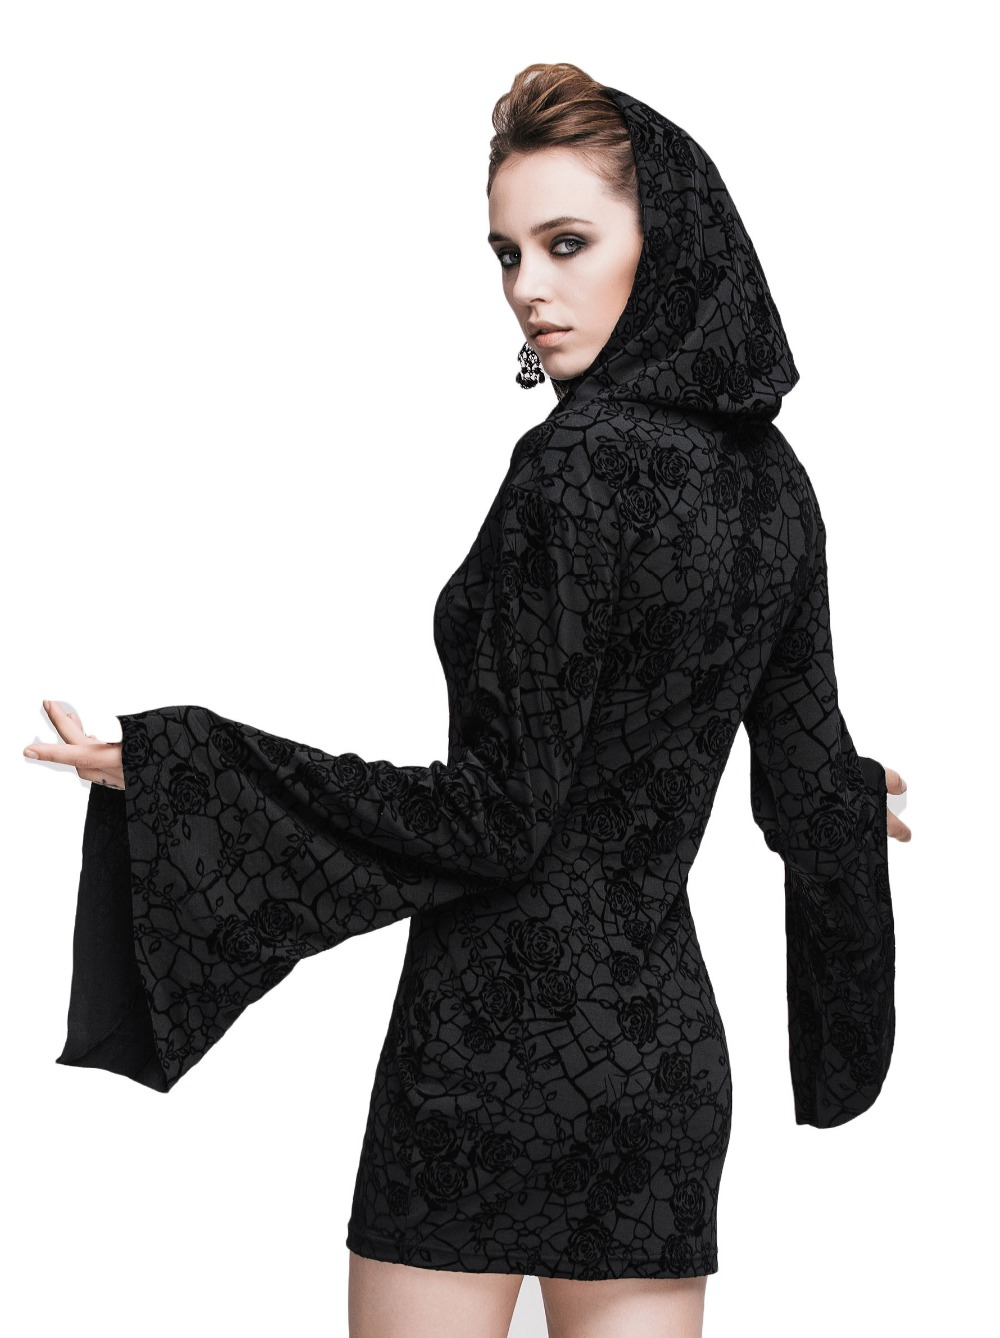 Steampunk Gothic Ukraine Black Dresses For Women Roses Print Flocking Knitted Dress With Hooded Long Sleeve Women Clothing 11